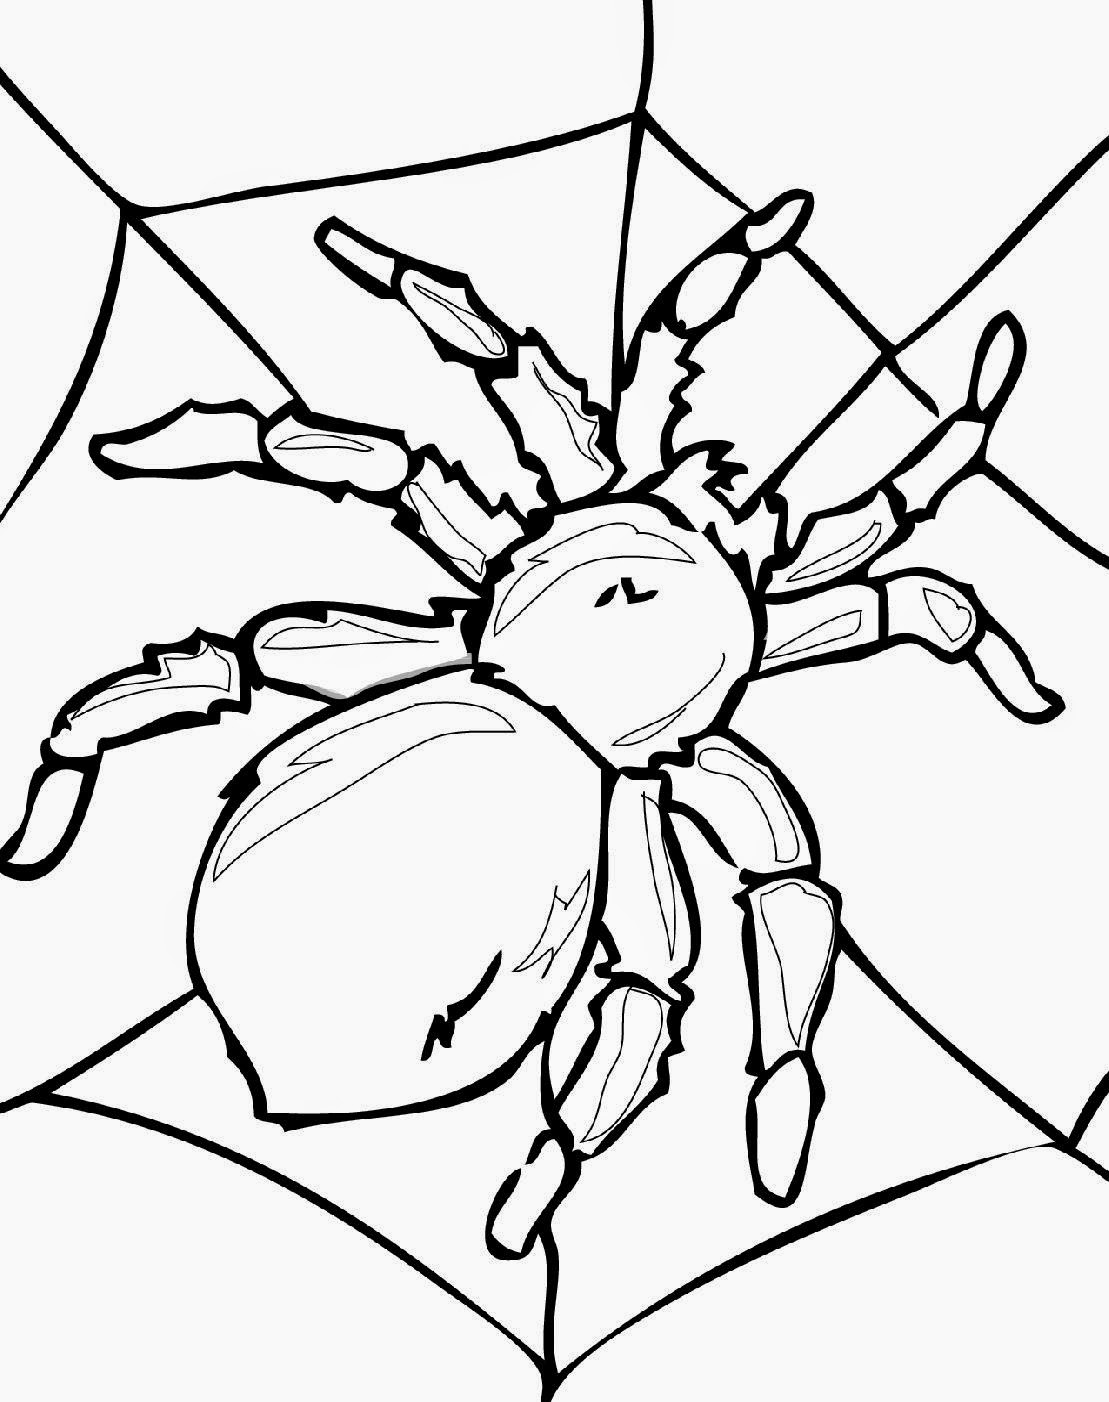 bug coloring pages top 17 free printable bug coloring pages online bug pages coloring